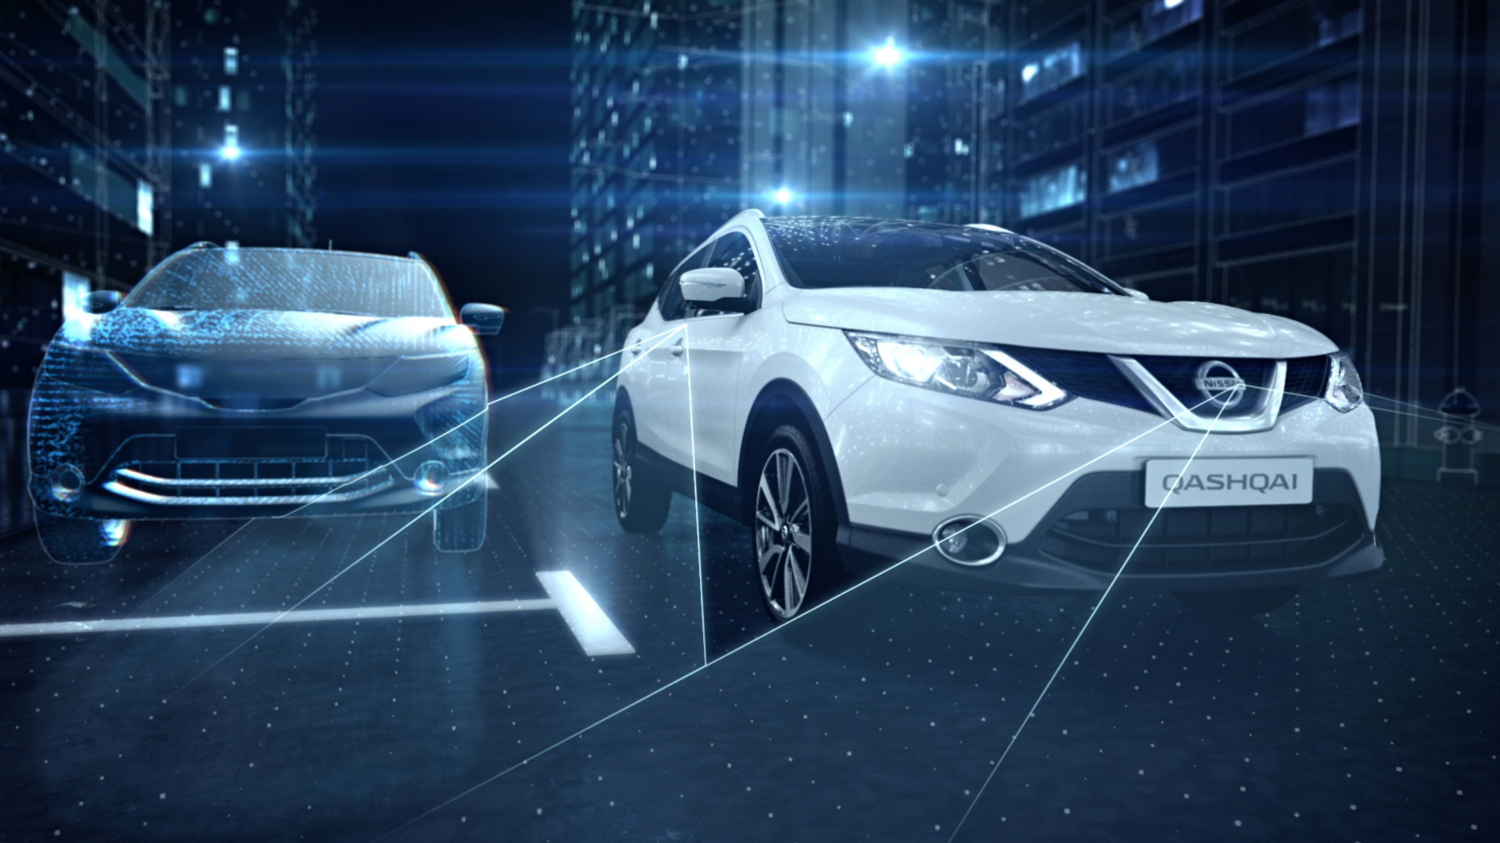 Nissan QASHQAI - Intelligente parkingsassistsystem